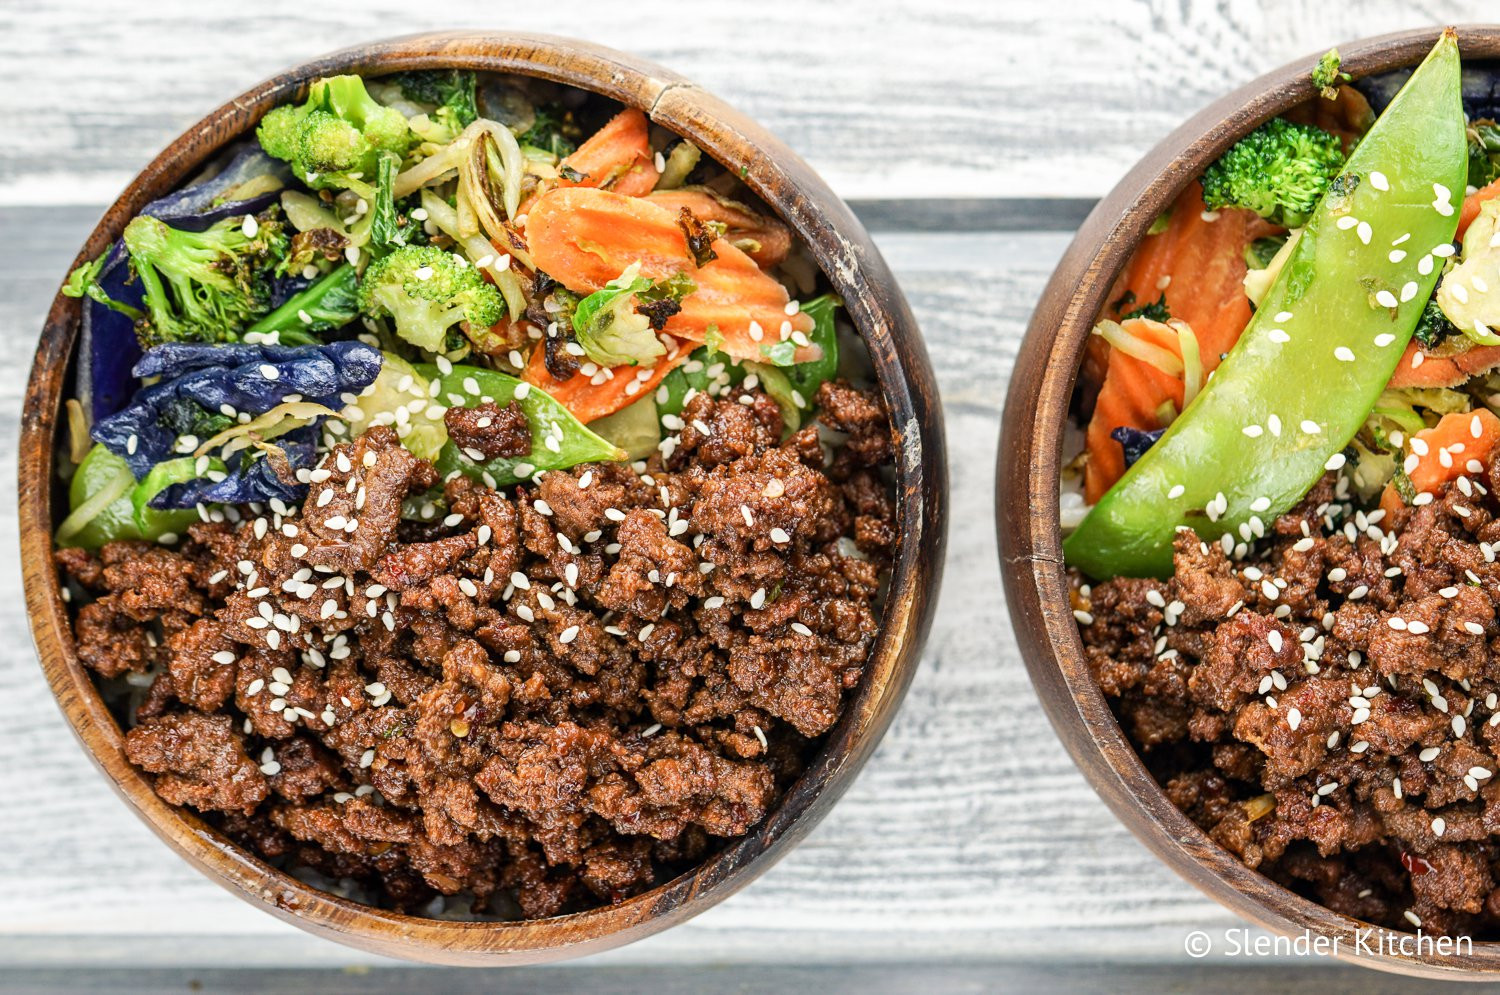 Healthy Recipes For Ground Beef  Healthy Korean Ground Beef with Ve ables Slender Kitchen